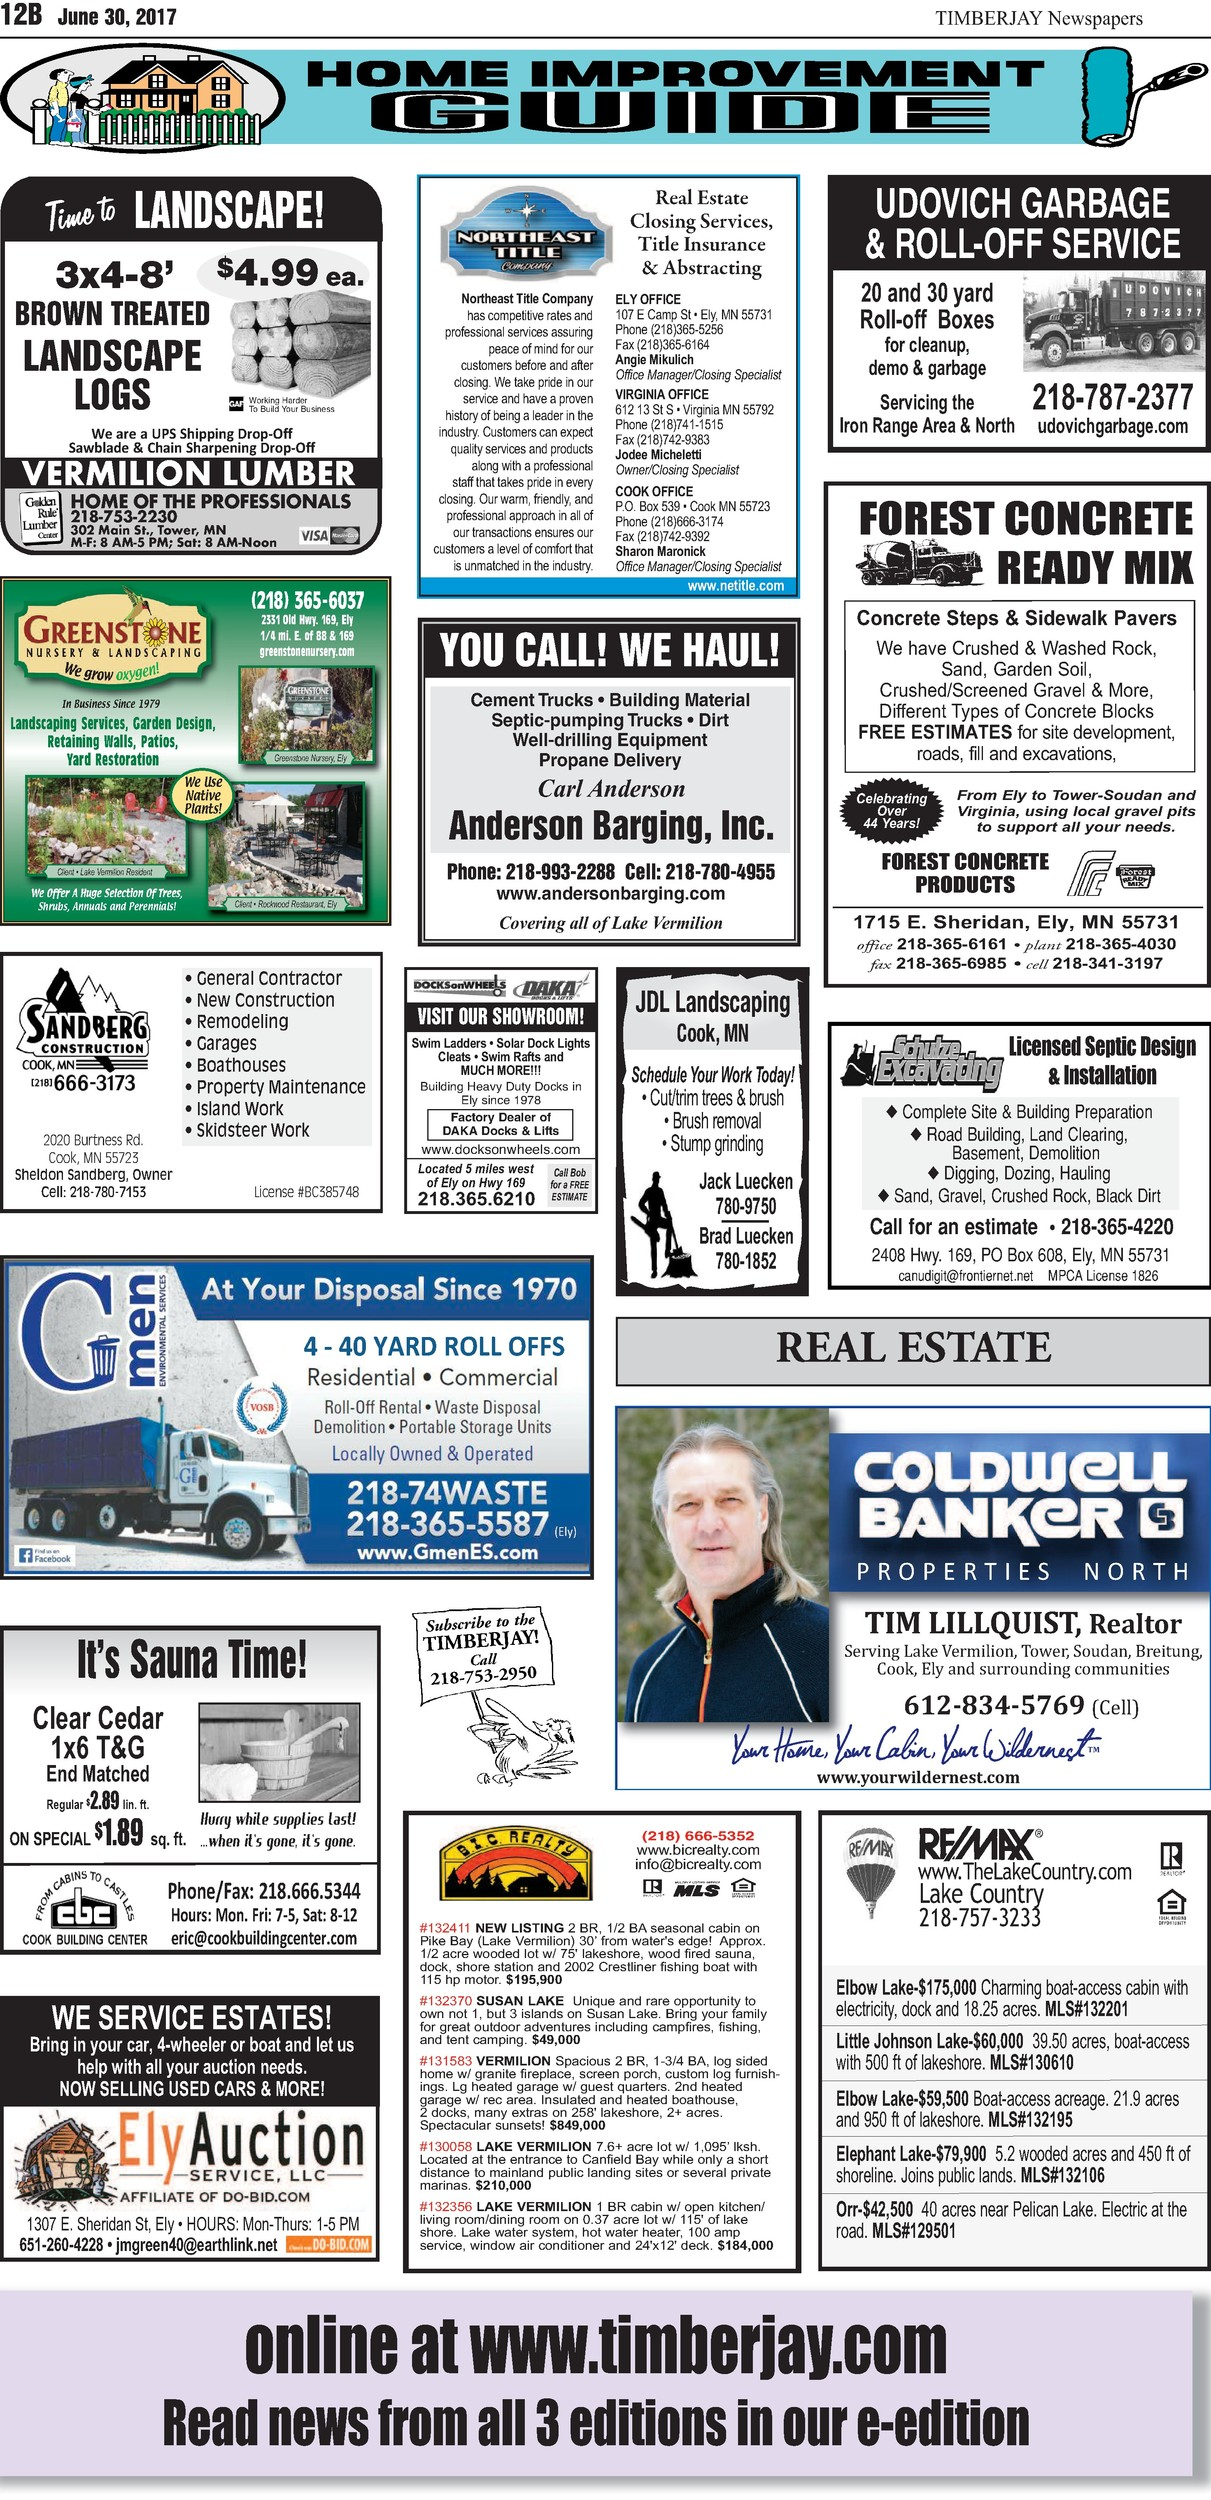 Click here for the legal notices and classifieds from page 12B